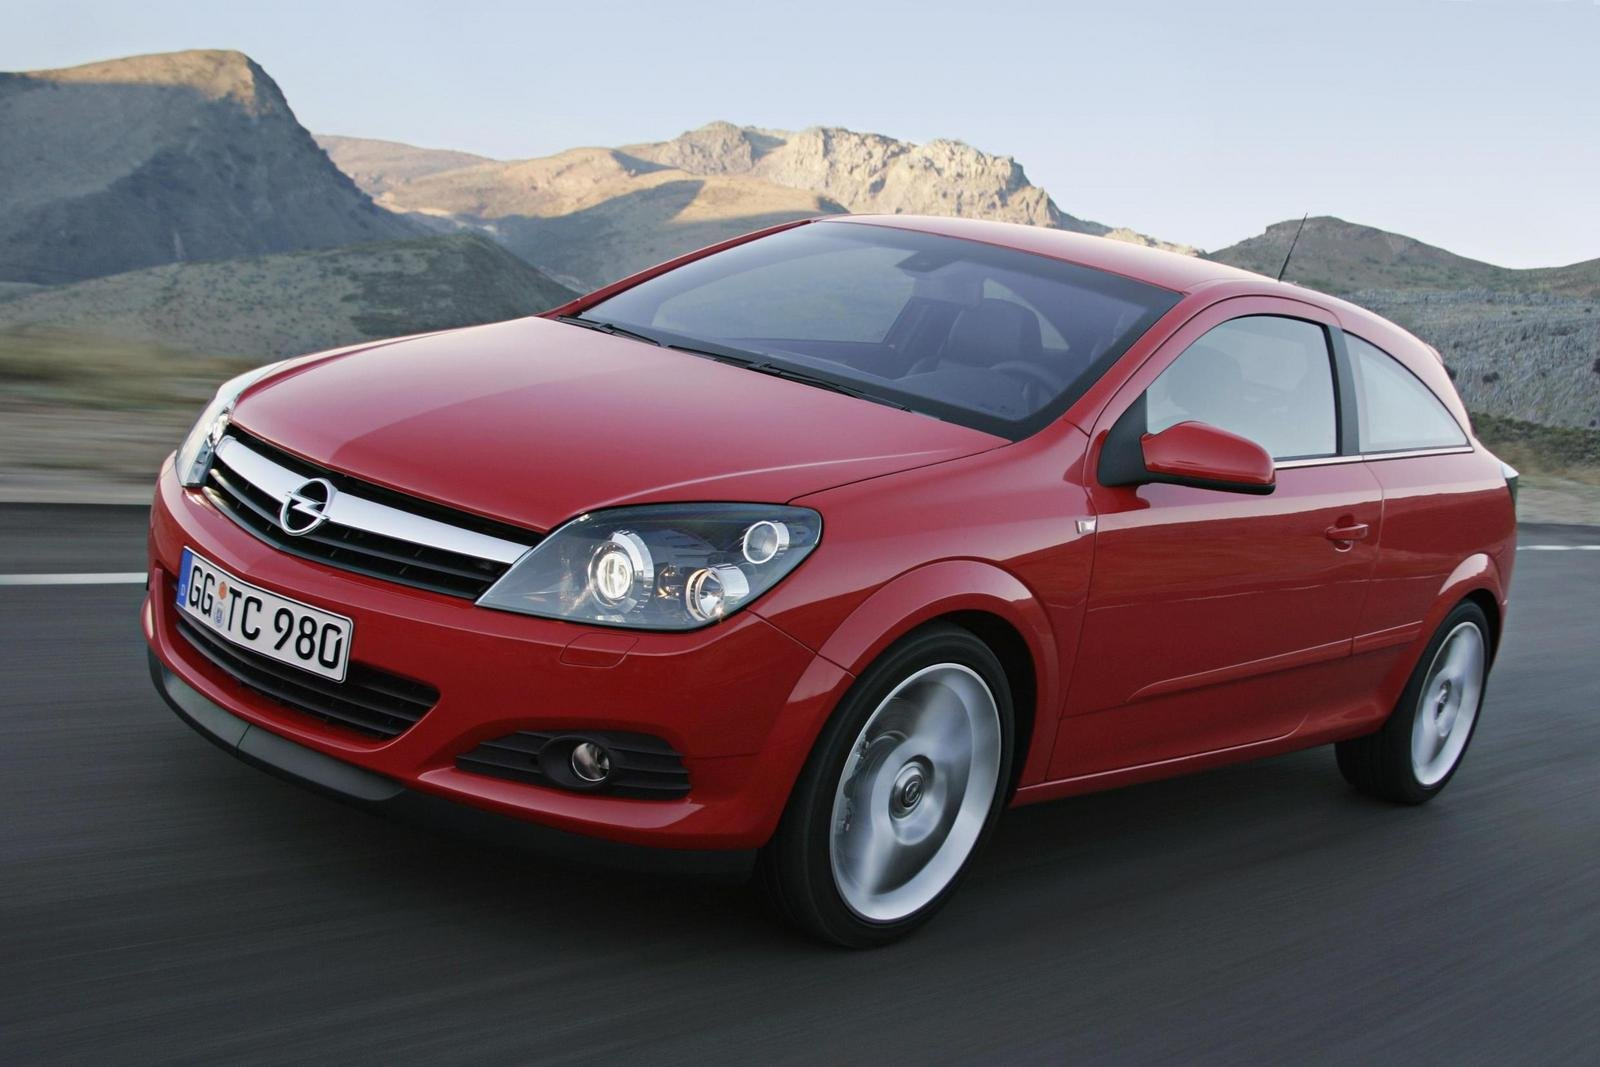 2007 opel astra gtc picture 140657 car review top speed. Black Bedroom Furniture Sets. Home Design Ideas